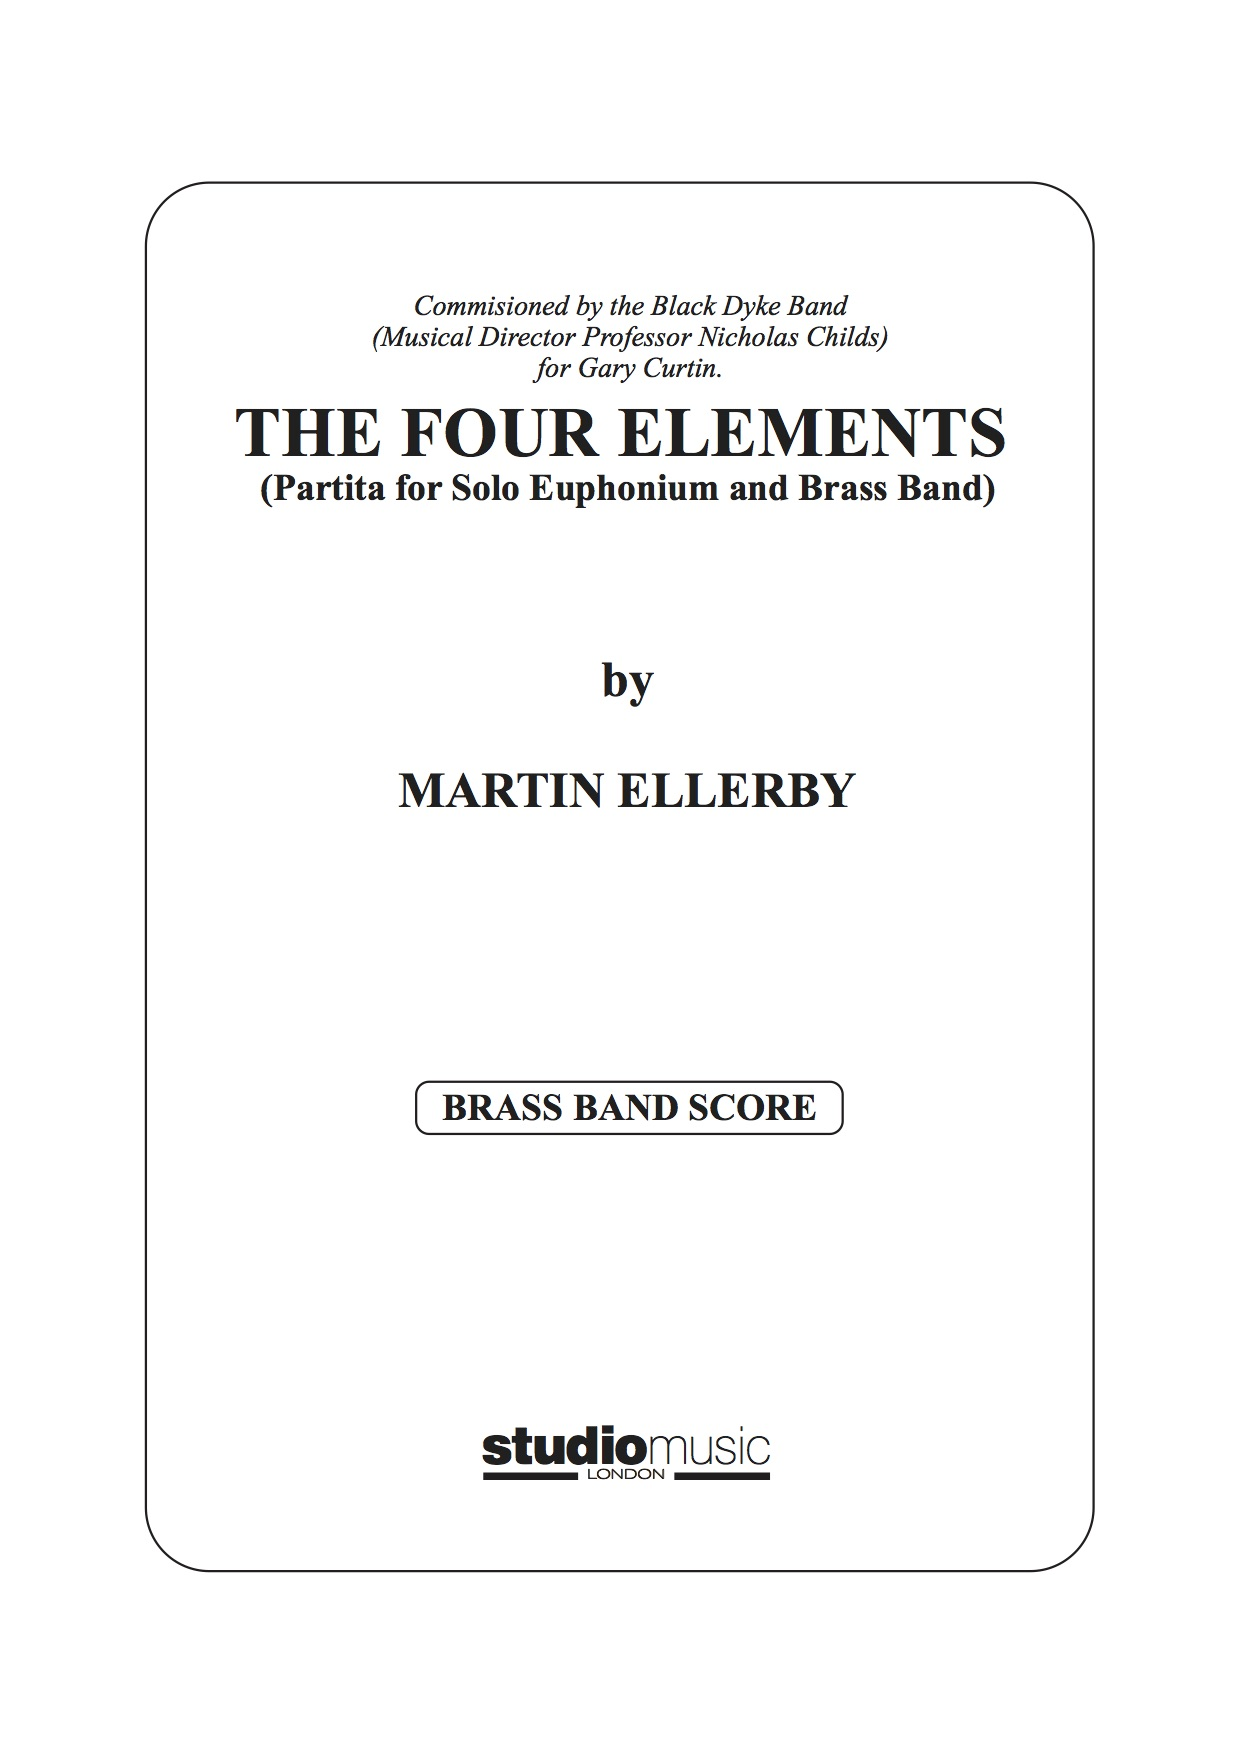 The Four Elements (Partita for Solo Euphonium and Brass Band) - Martin Ellerby - brass band set